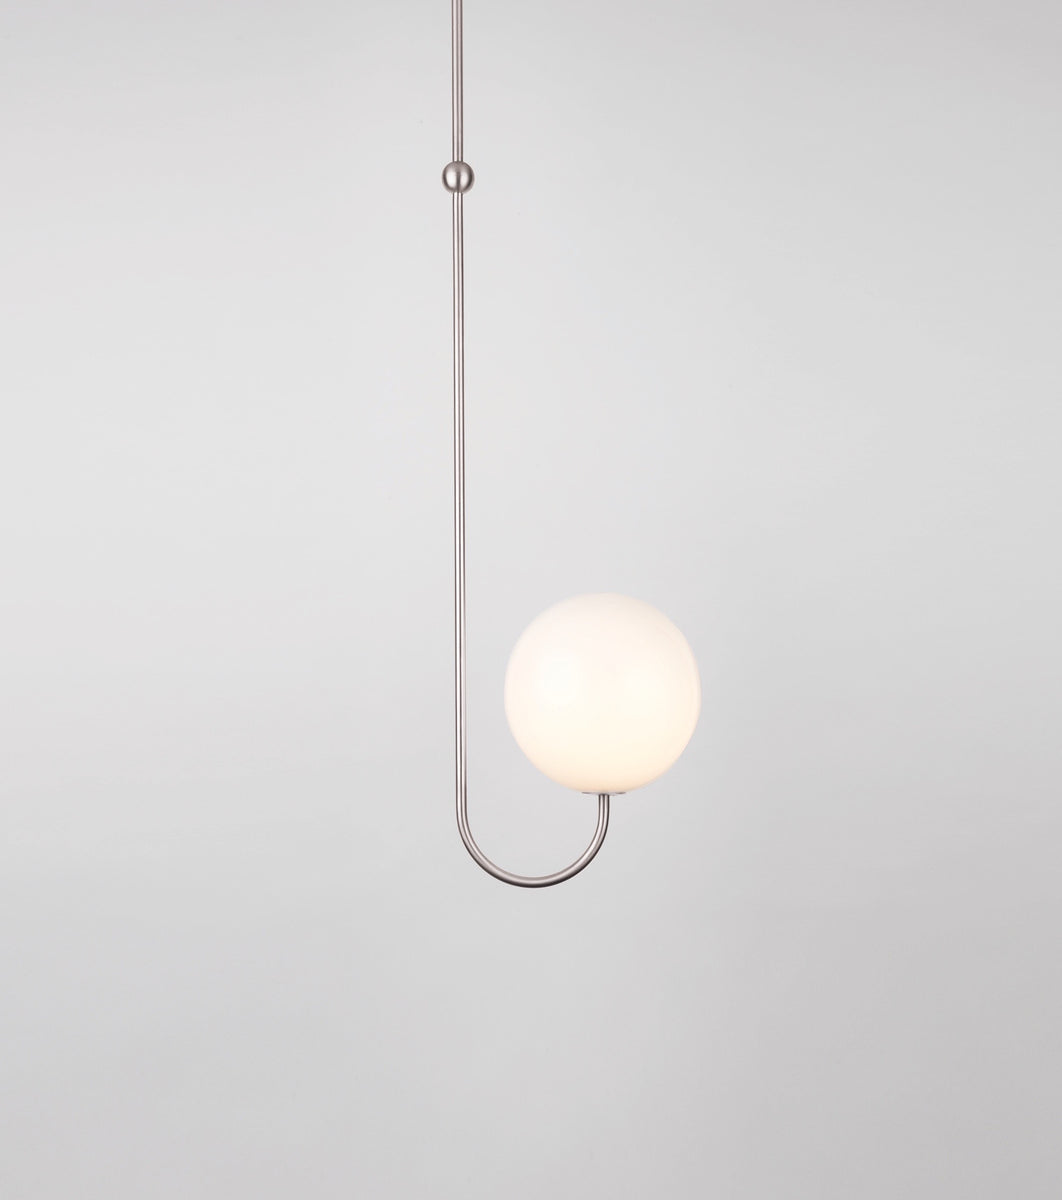 Single Angle Satin Nickel-plated Brass Michael Anastassiades - Image 1